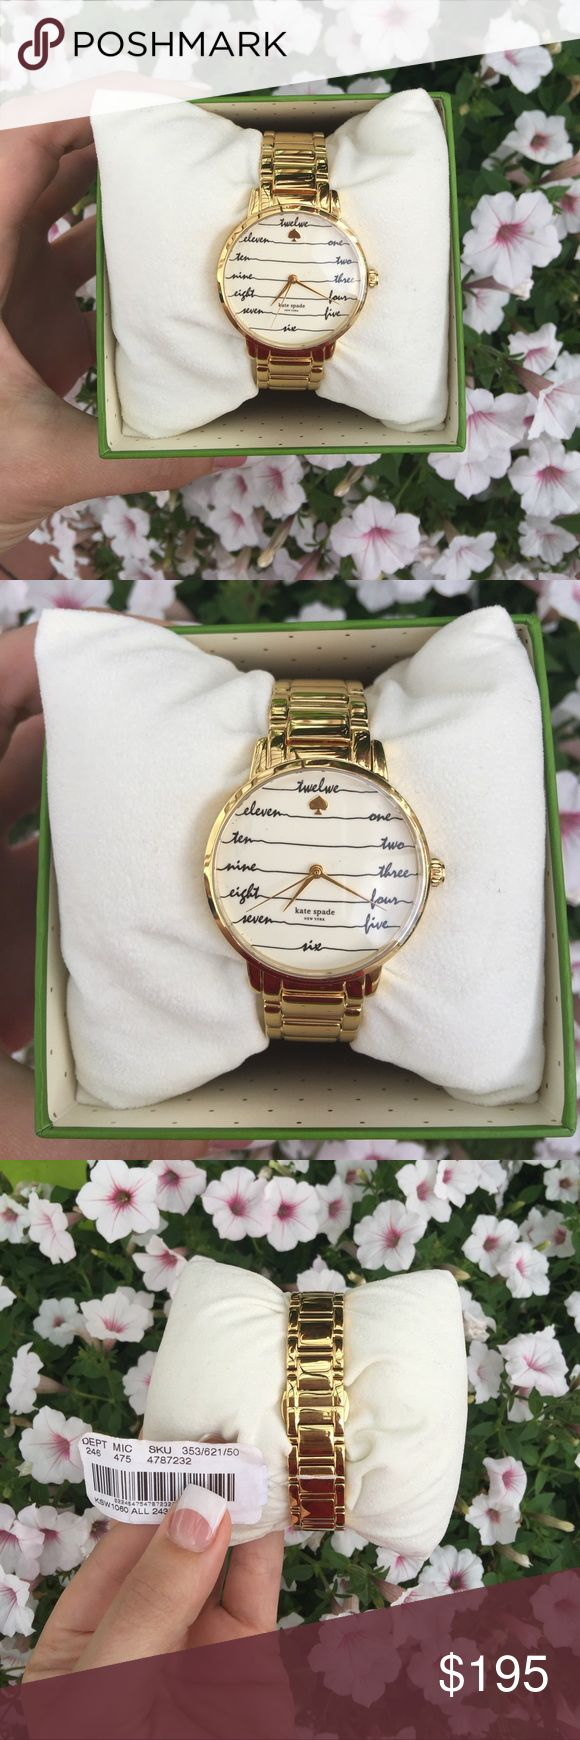 1DAY SALE Kate Spade Gramercy Gold-Tone Watch SALE PRICE IS FIRM AND IS VALID 9/3 ONLY! NWT! This Kate Spade watch is stunning with its gold tone stainless steel bracelet and cream dial with black script numbers, gold tone Kate Spade twelve o'clock, three hands, and Kate Spade logo. The case is 34mm and the watch is water resistant up to 30 meters. Style #: KSW1060. Comes with Kate Spade watch box, Kate Spade watch pillow, and authenticity booklet. No trades. No PayPal! kate spade…